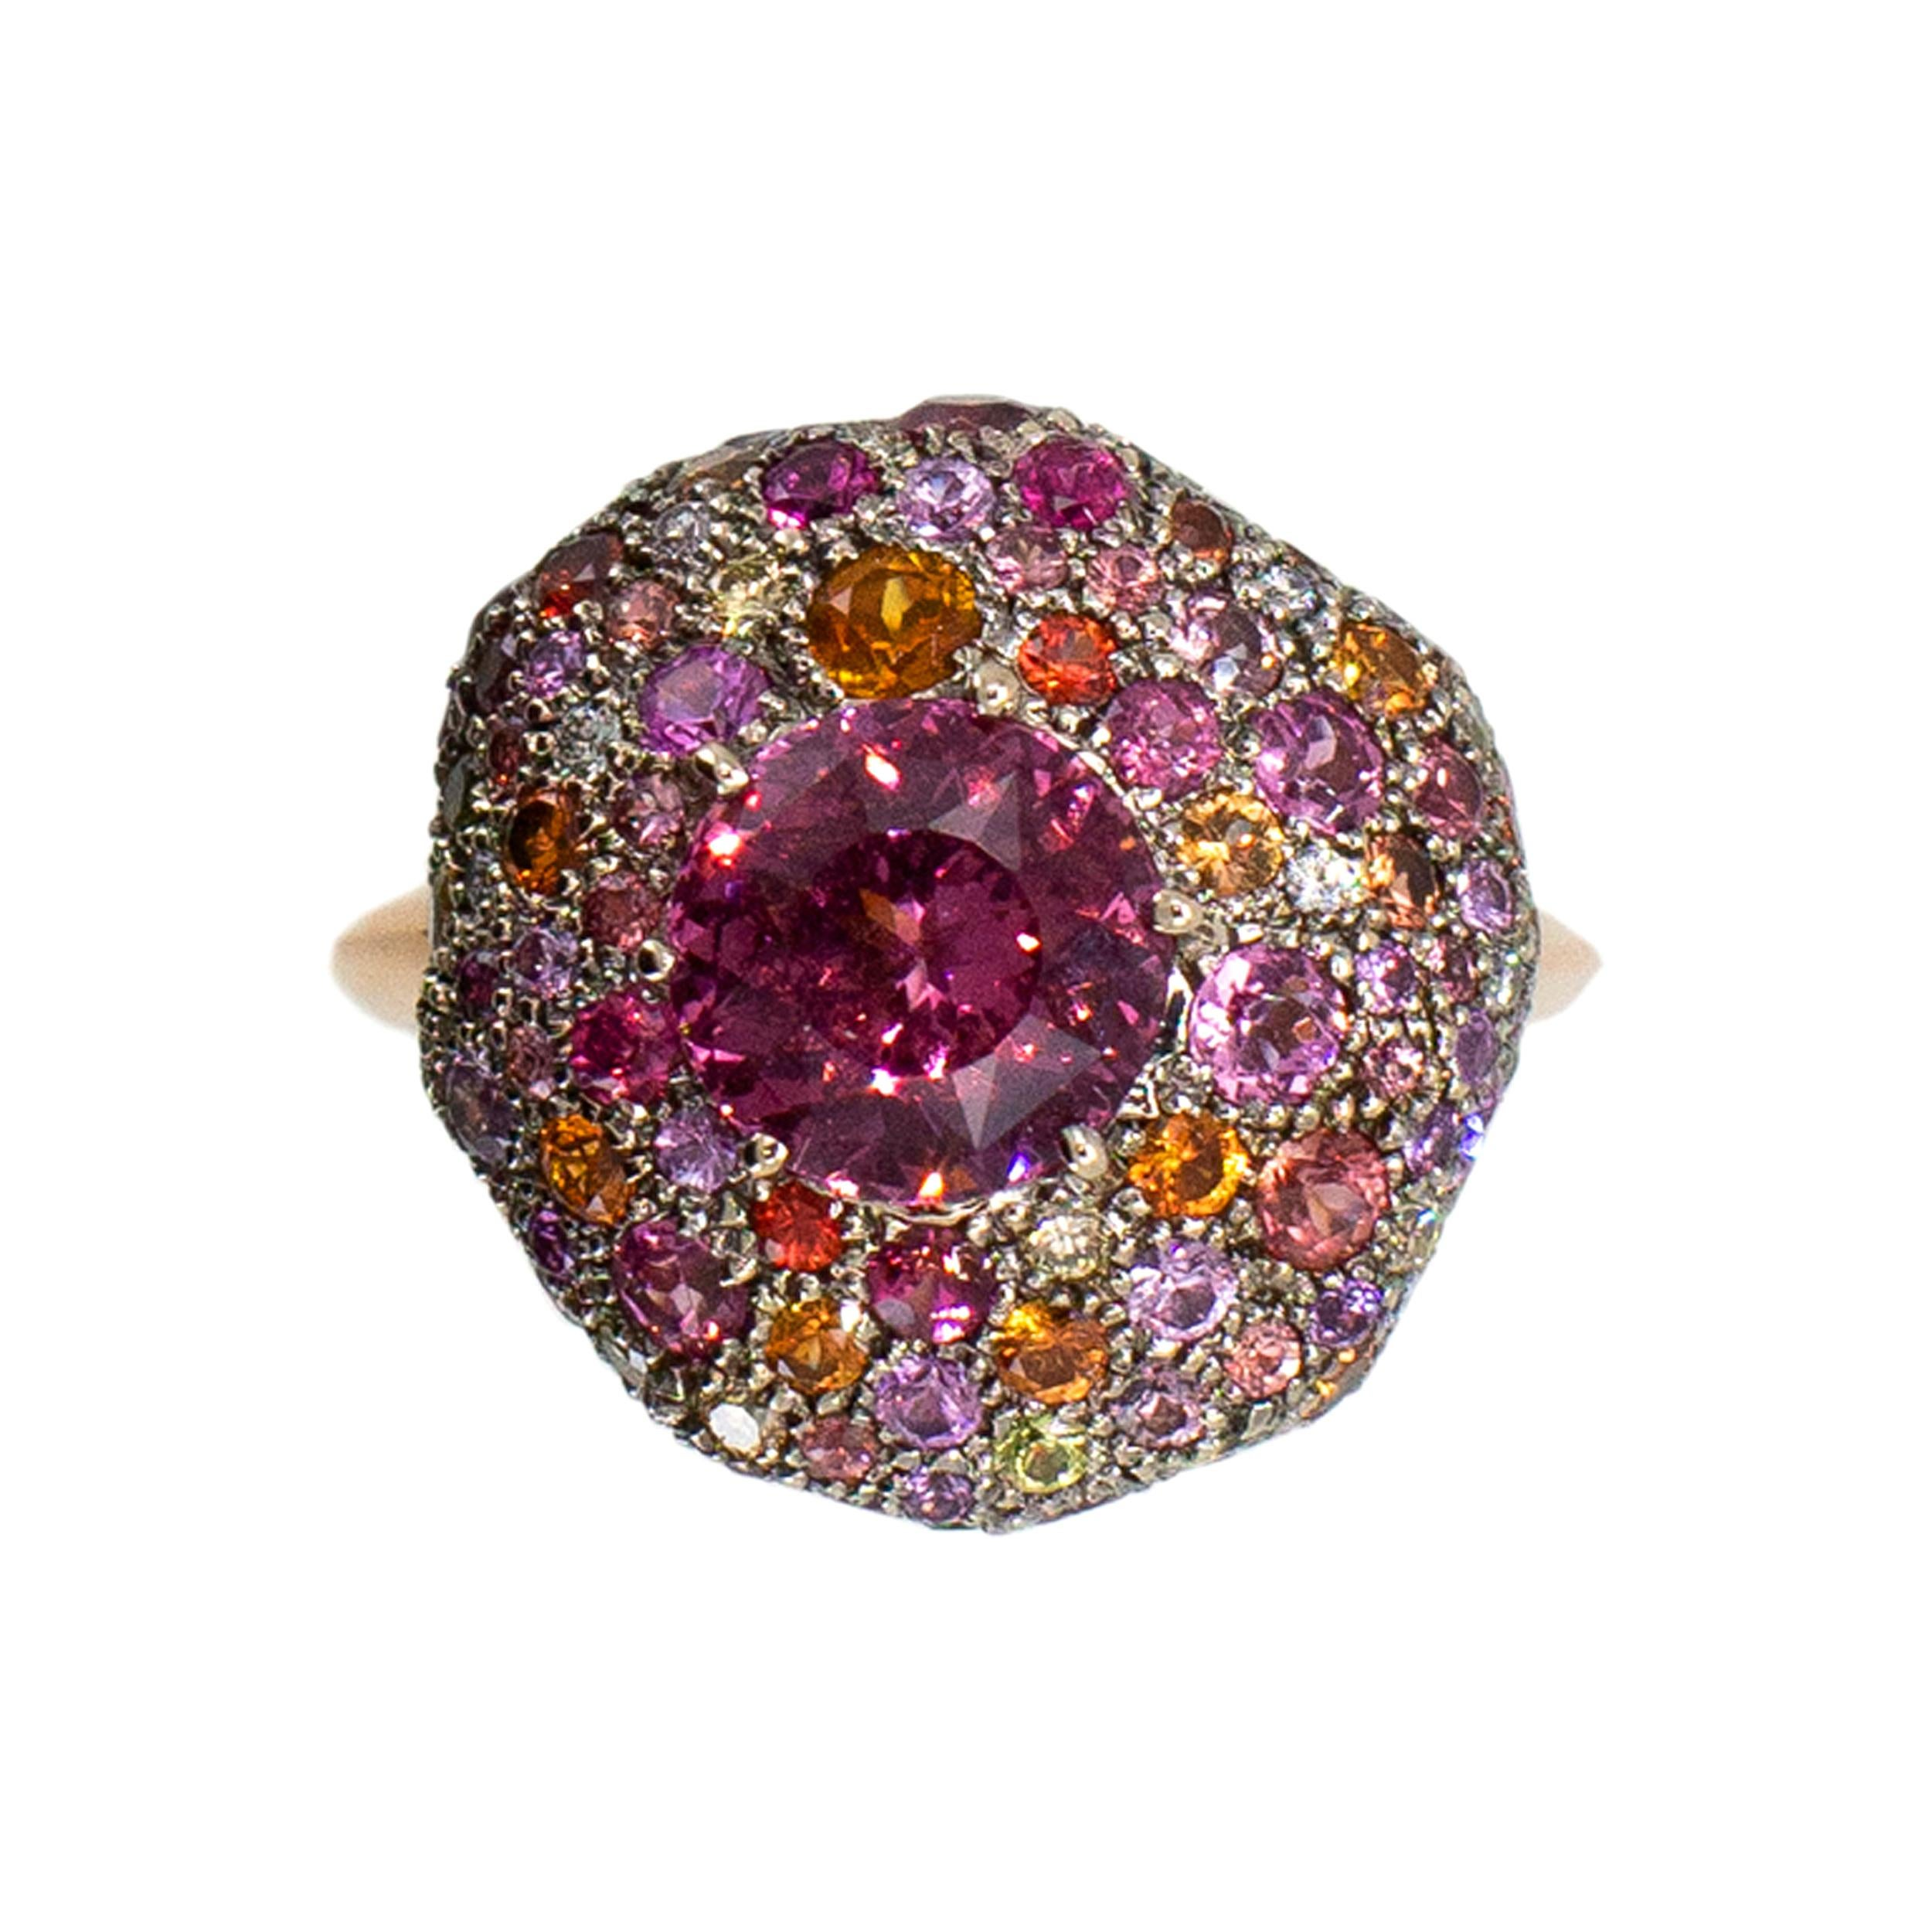 Laura Munder Pink Spinel Diamond Sapphire Tourmaline Citrine Fashion Ring